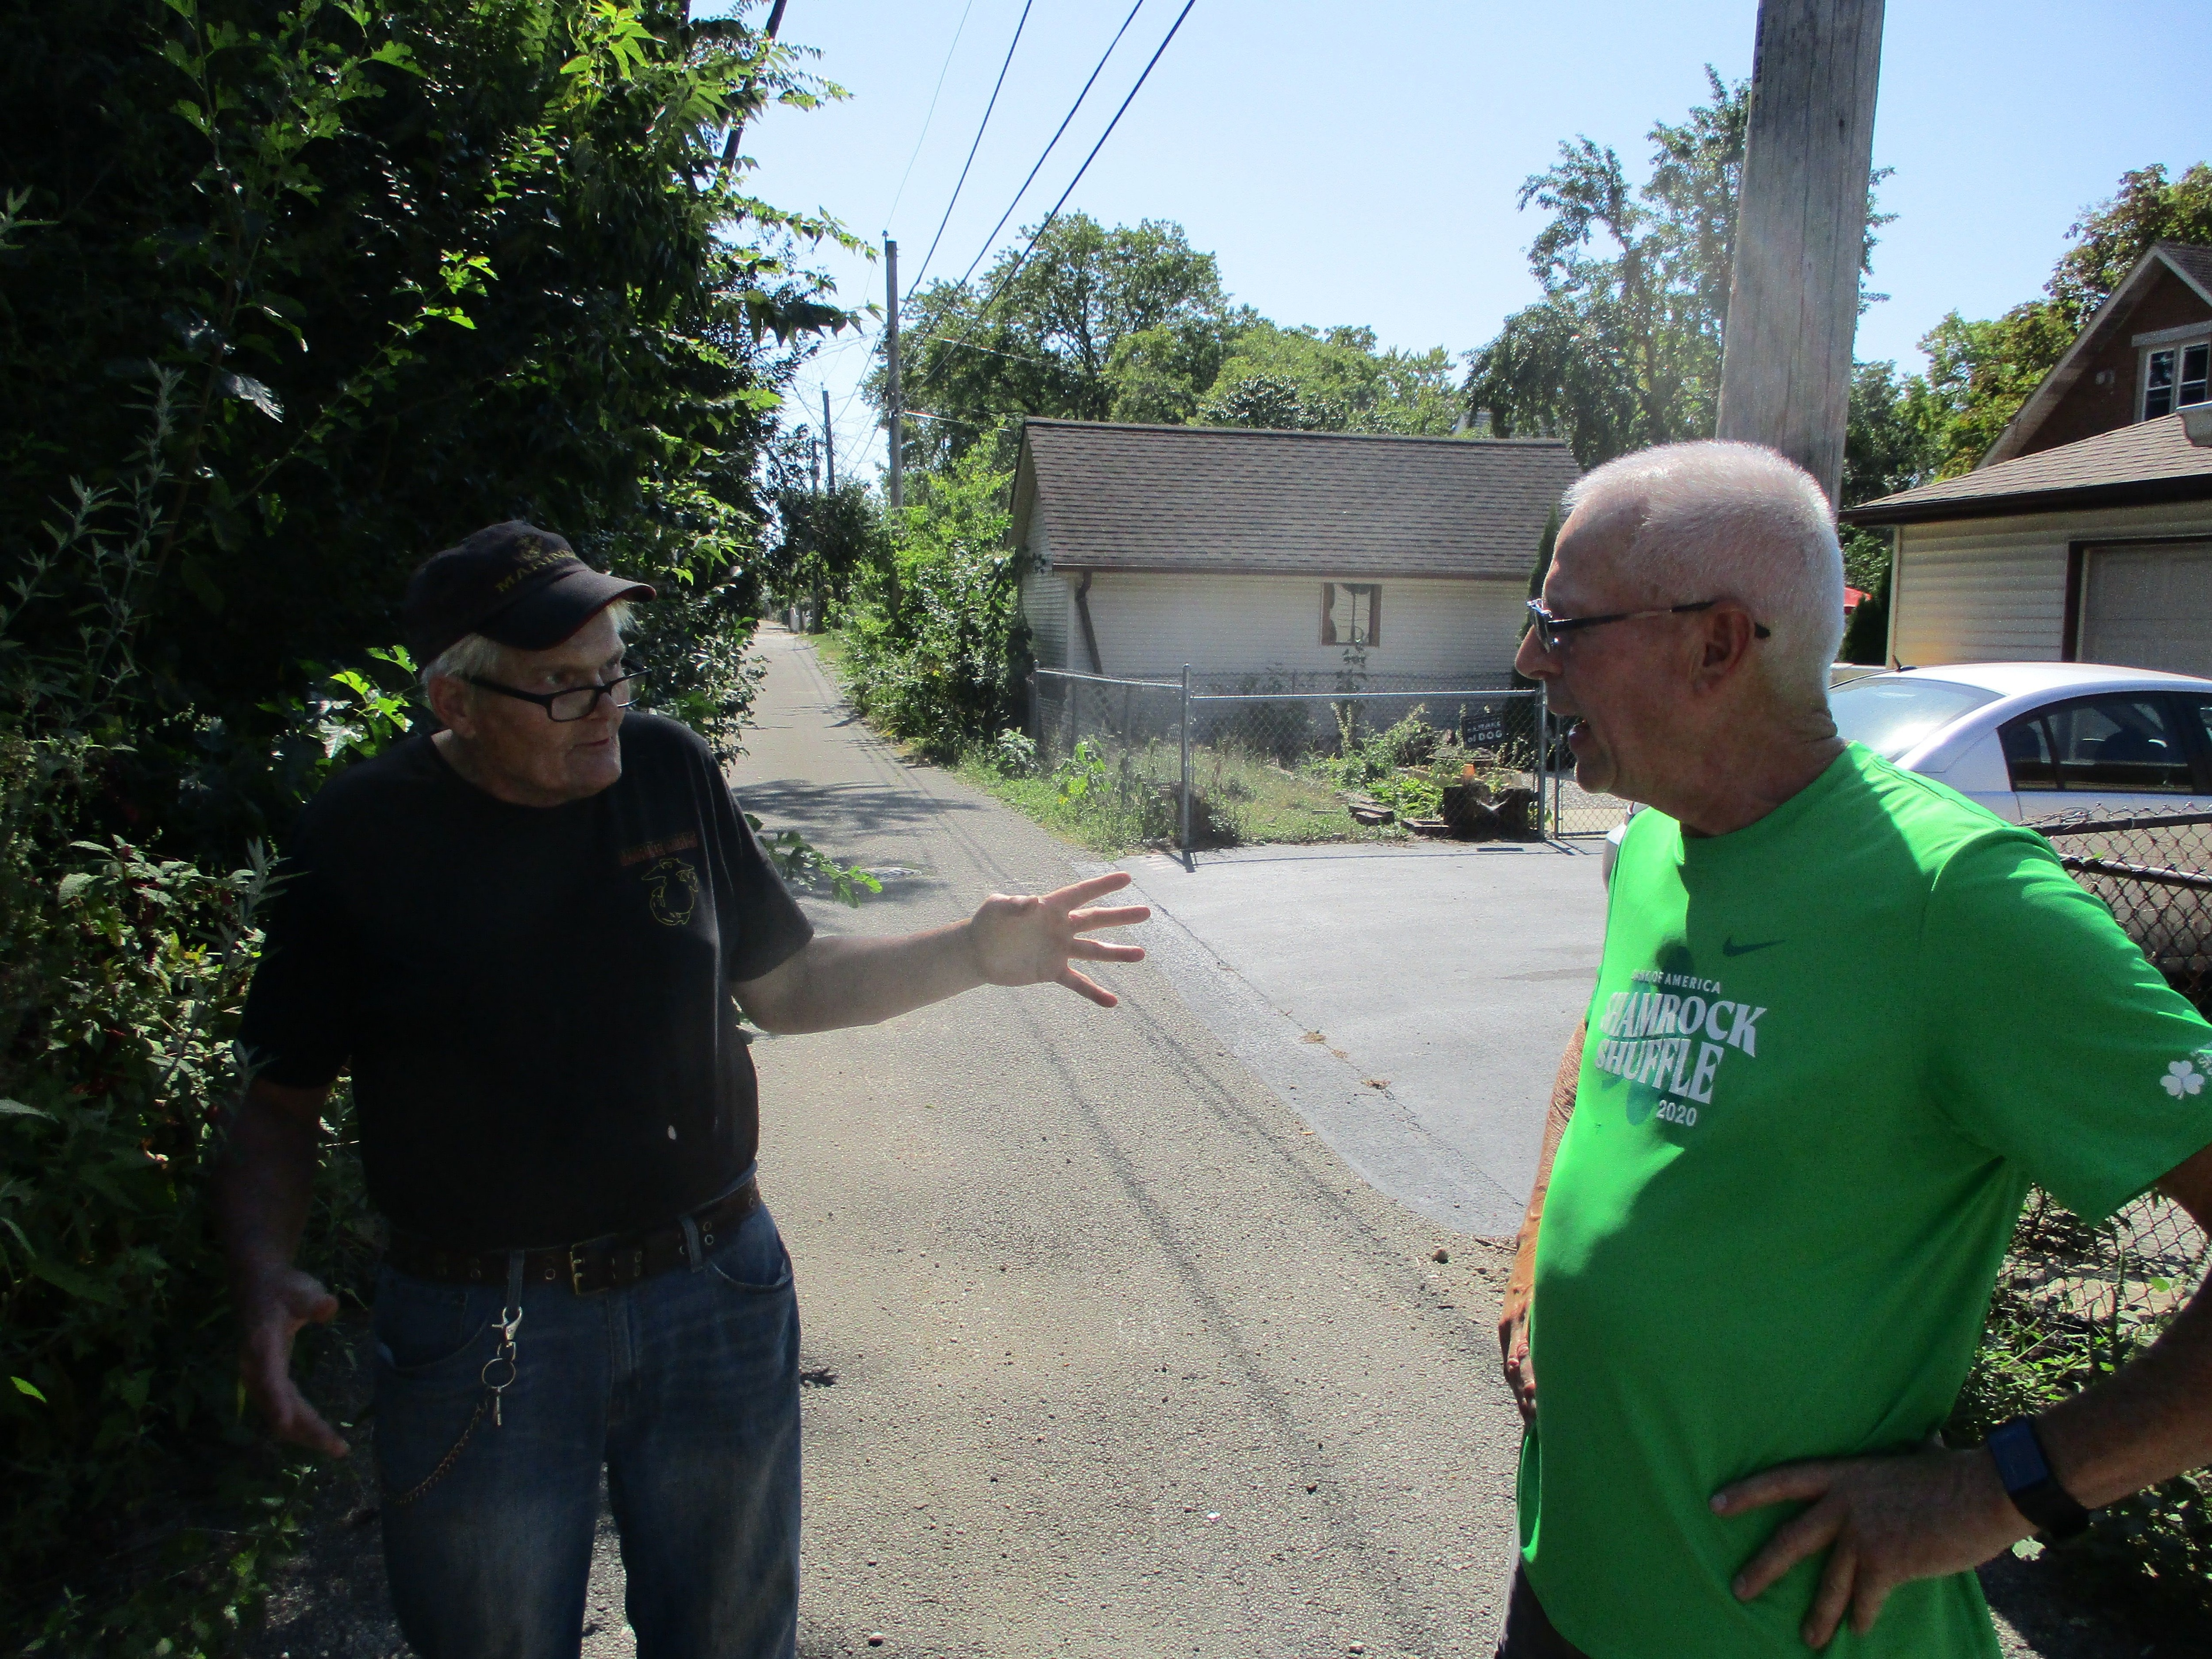 John Sheridan (right) talks with neighbor Gene Sorensen in the alley behind their houses.